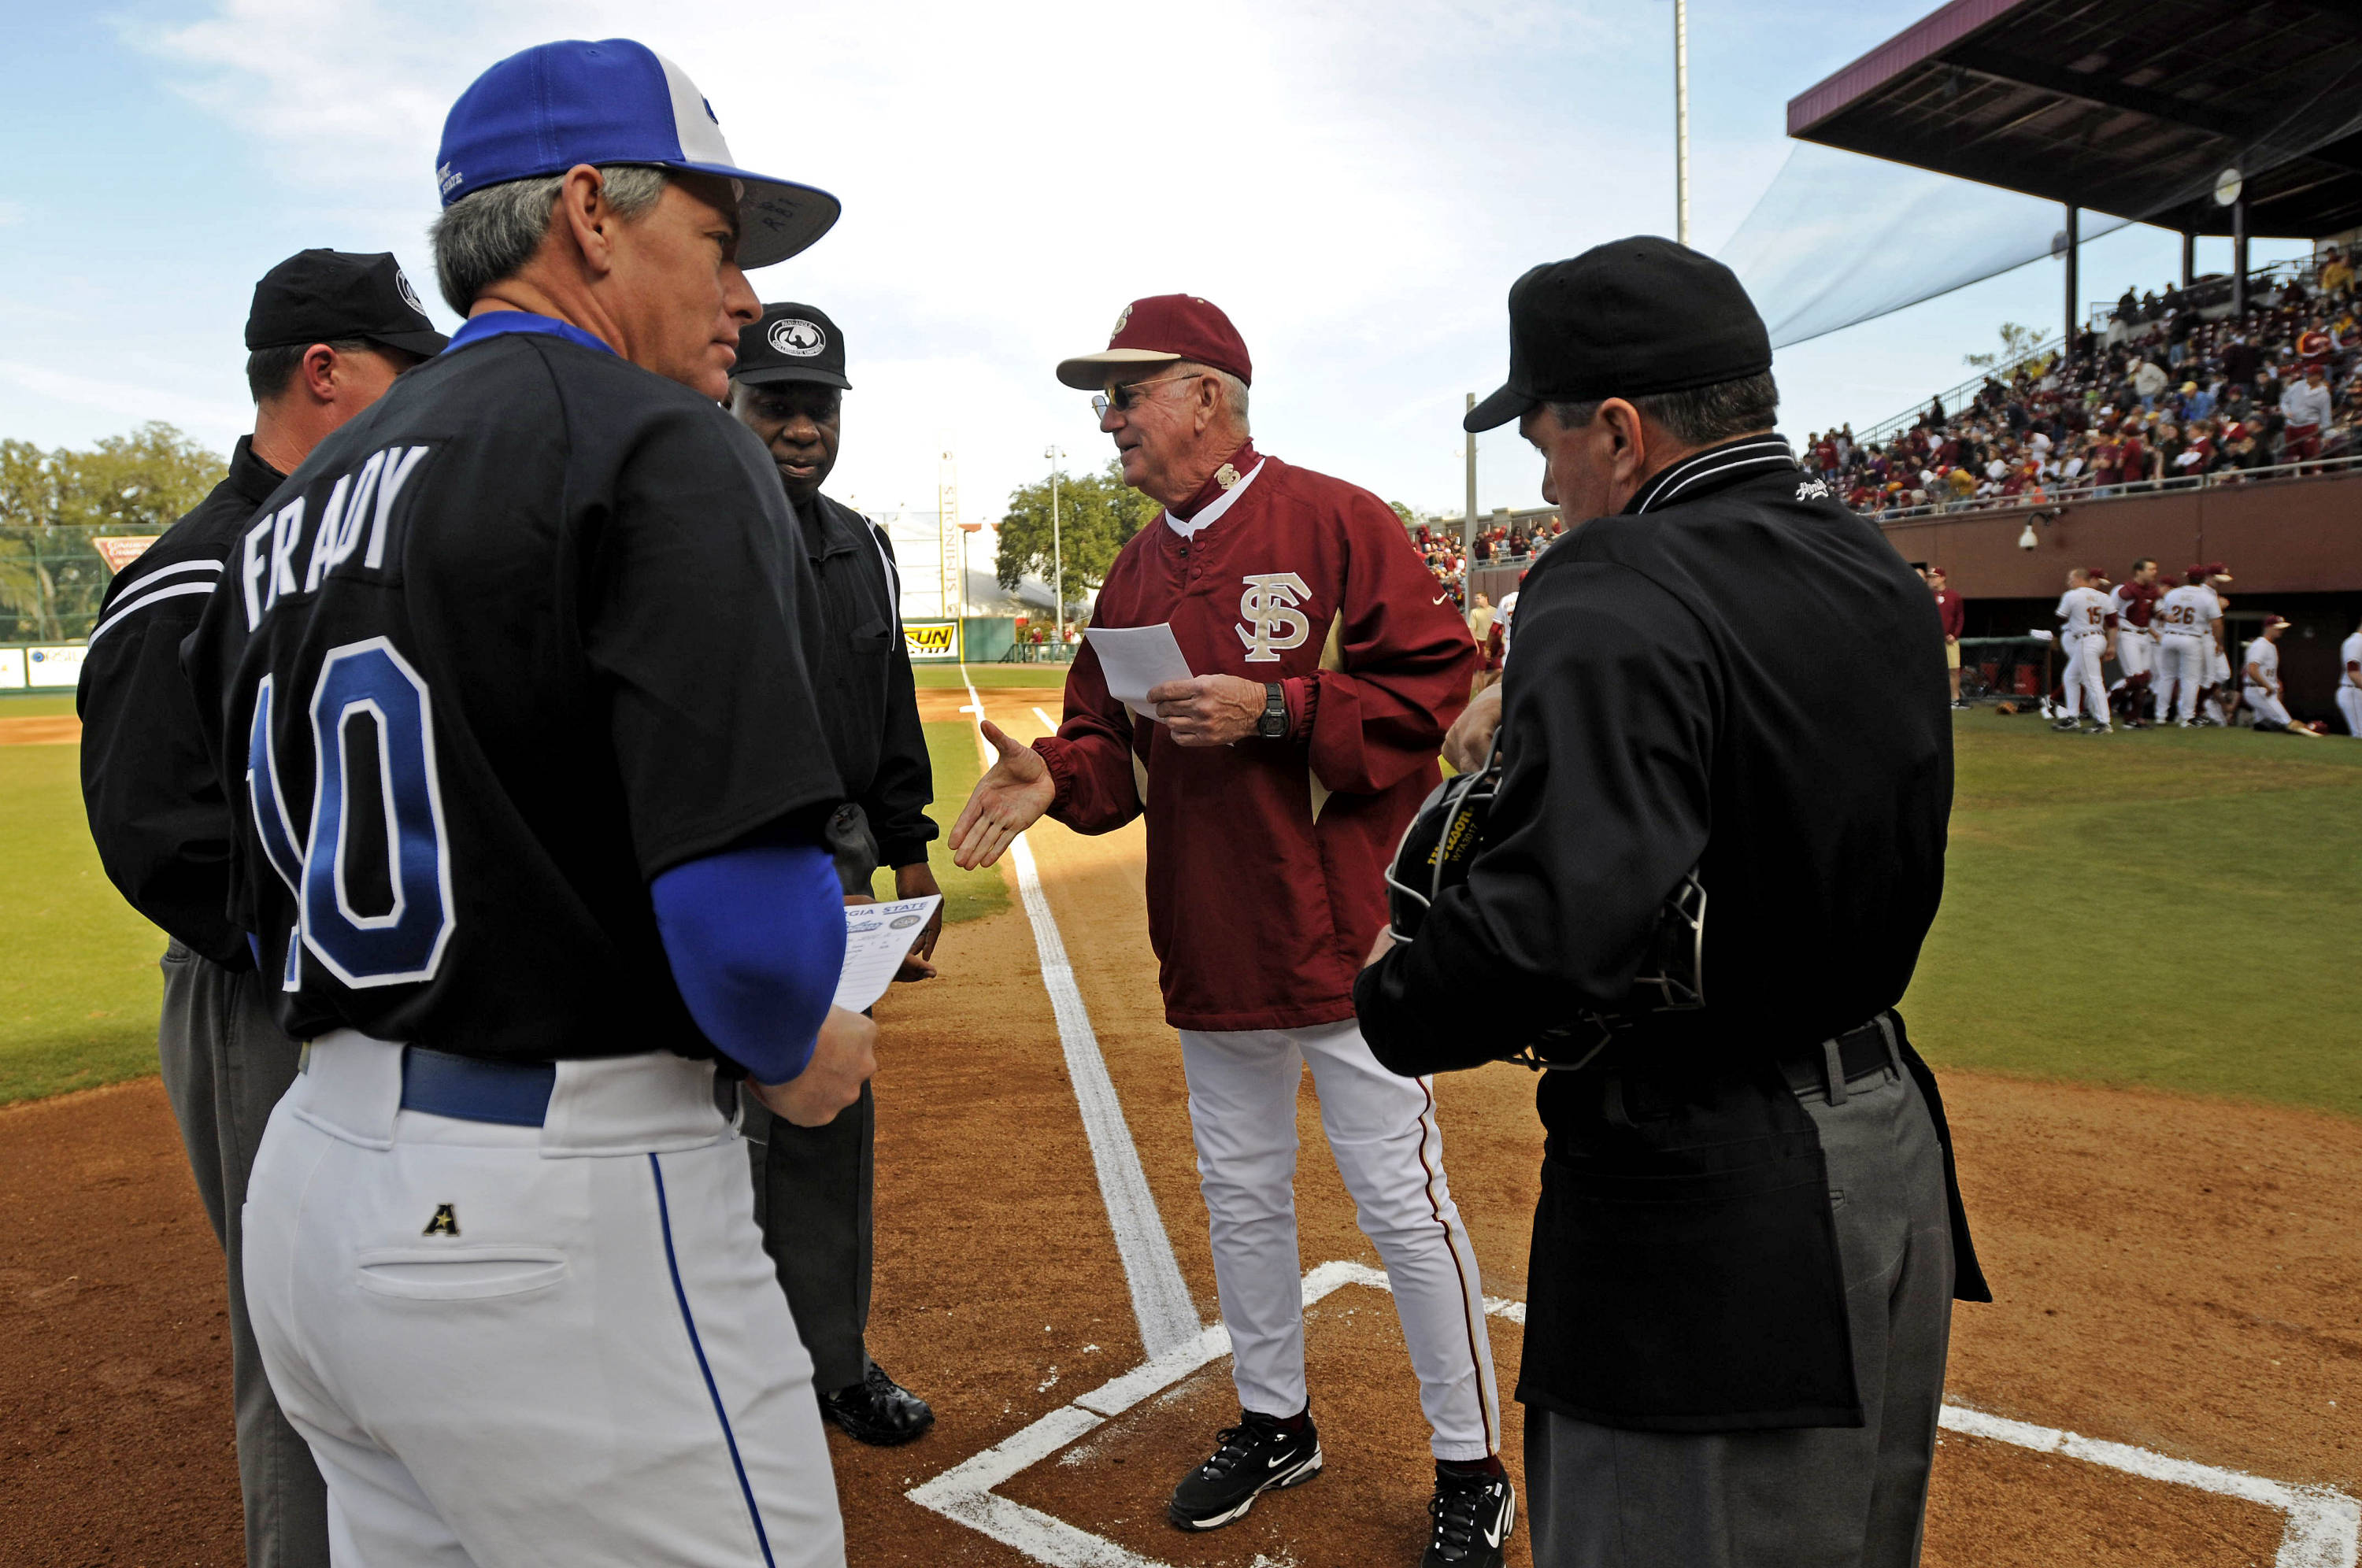 Head coach Mike Martin meets with the umpiring crew and Georgia State head coach Greg Frady.